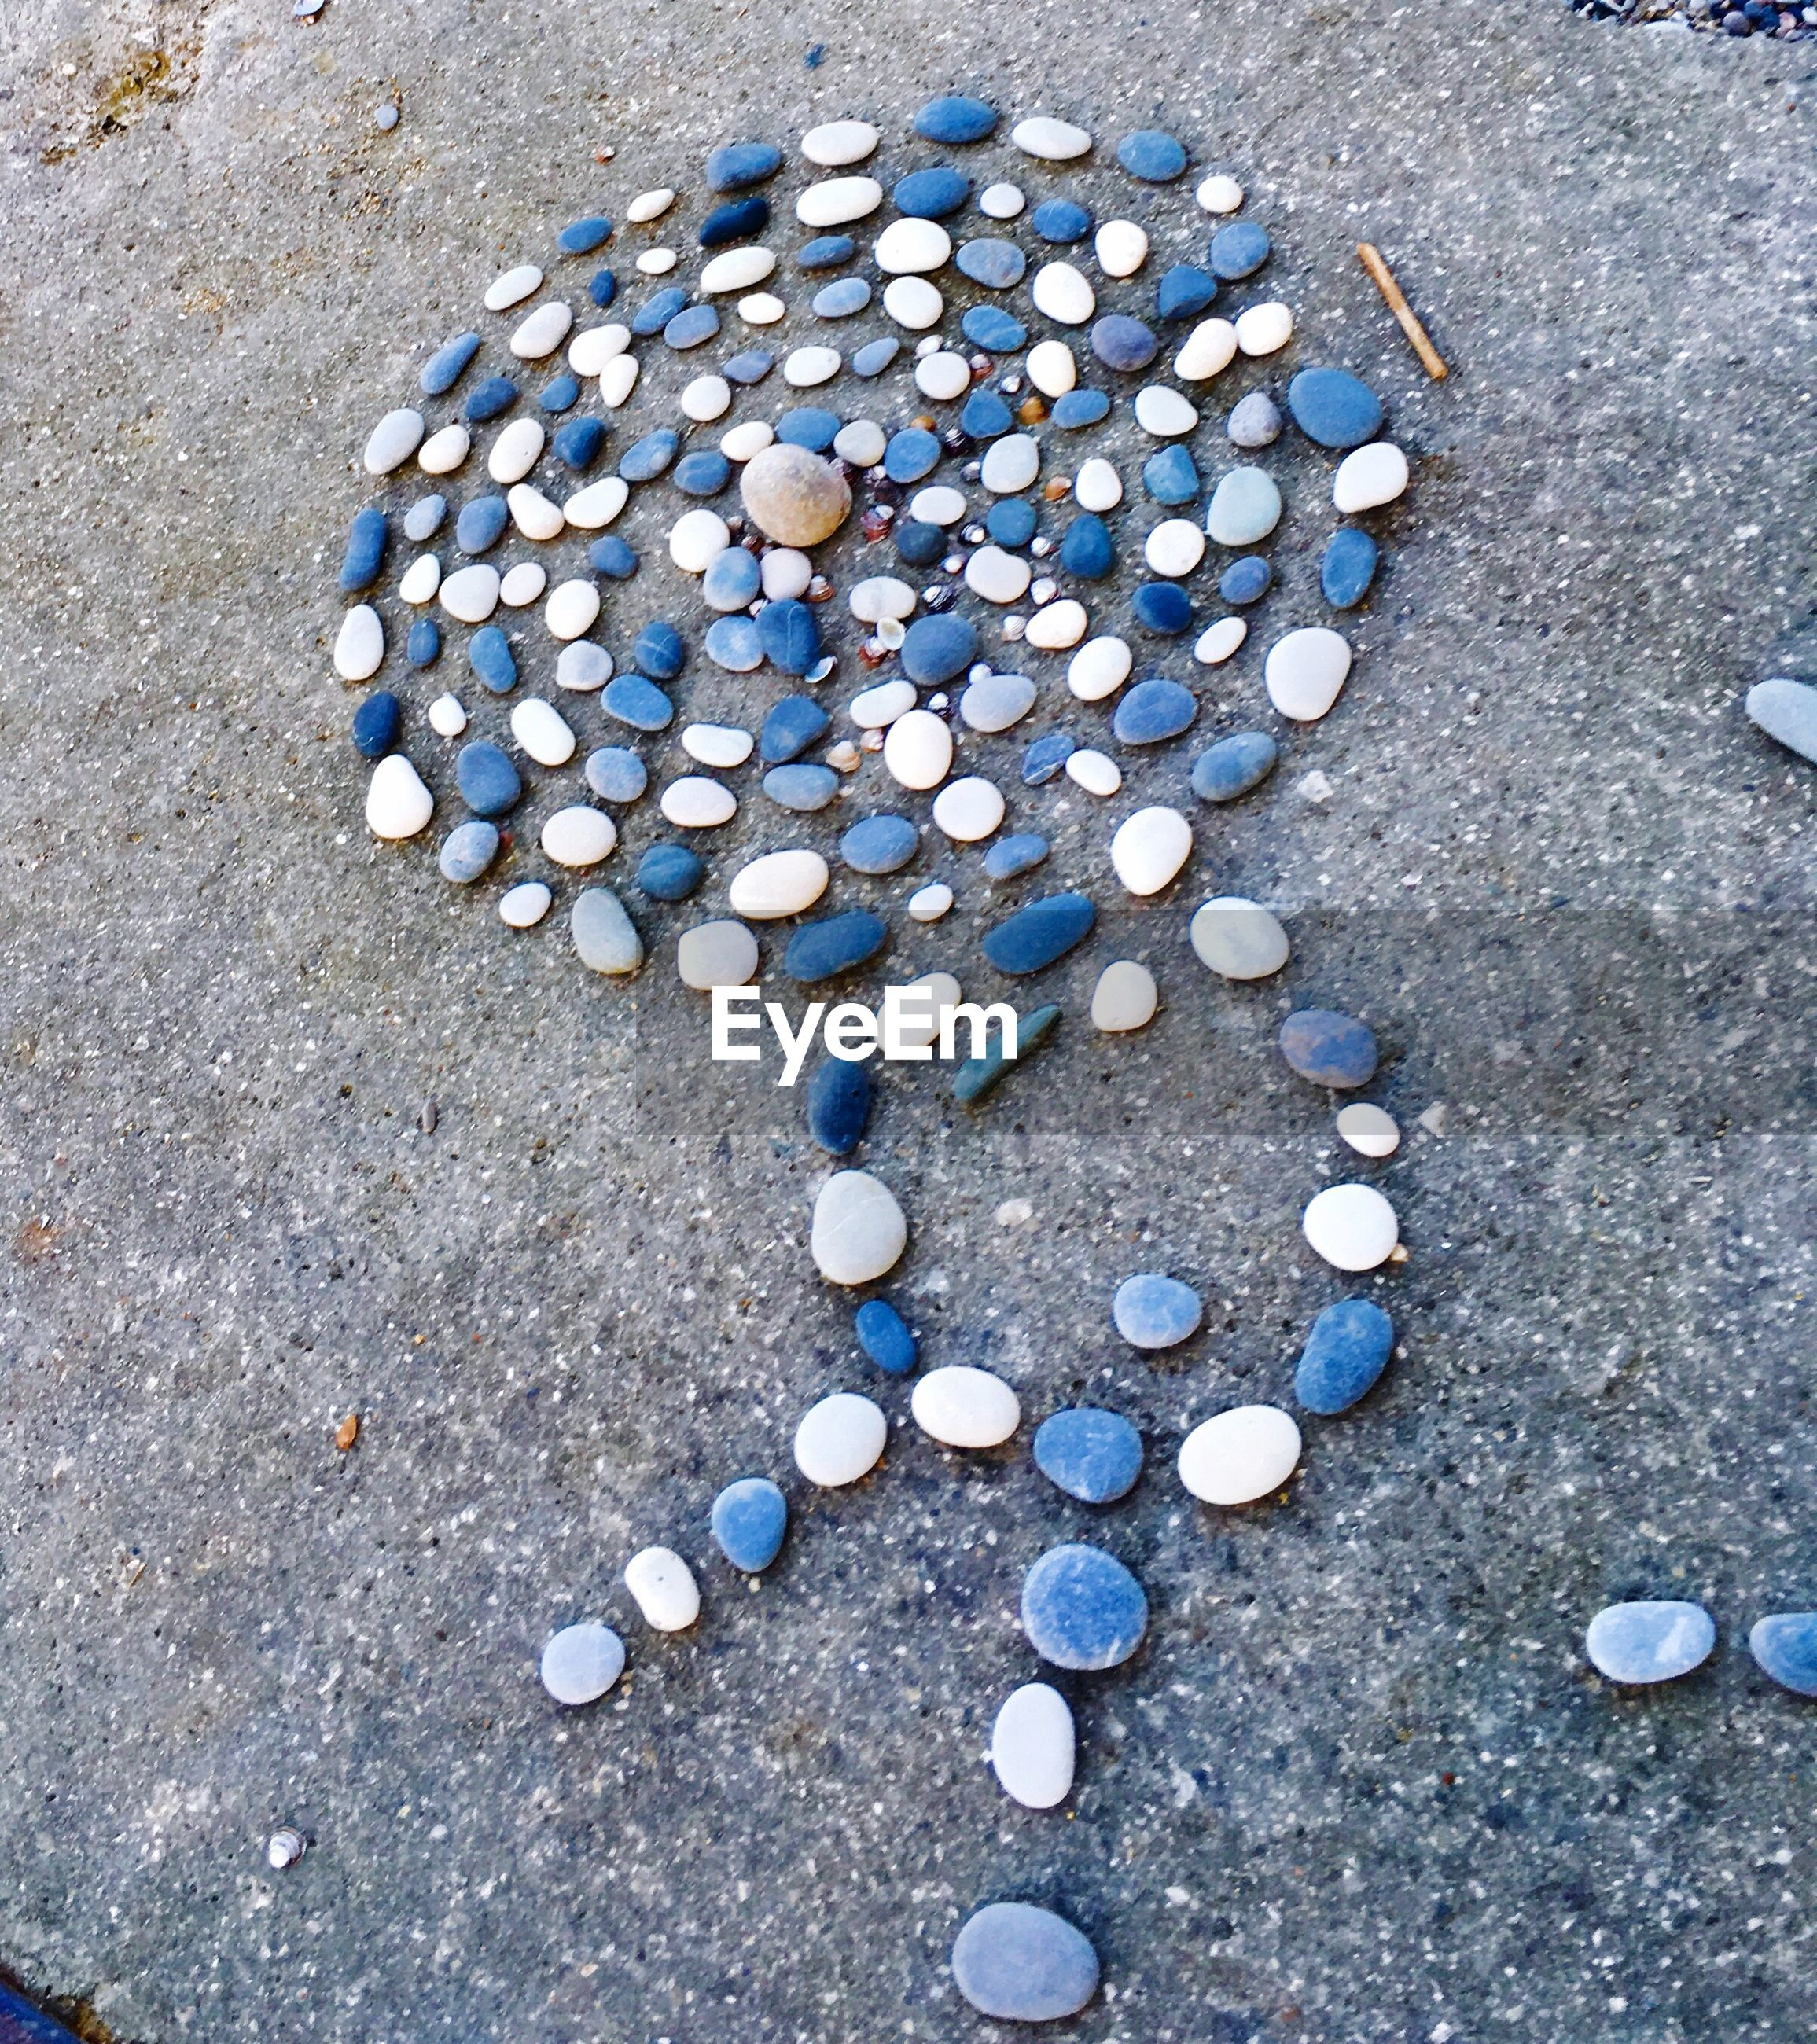 high angle view, close-up, pebble, stone - object, large group of objects, abundance, blue, repetition, shore, vibrant color, day, order, nature, arrangement, outdoors, focus on foreground, overhead view, no people, blue color, extreme close up